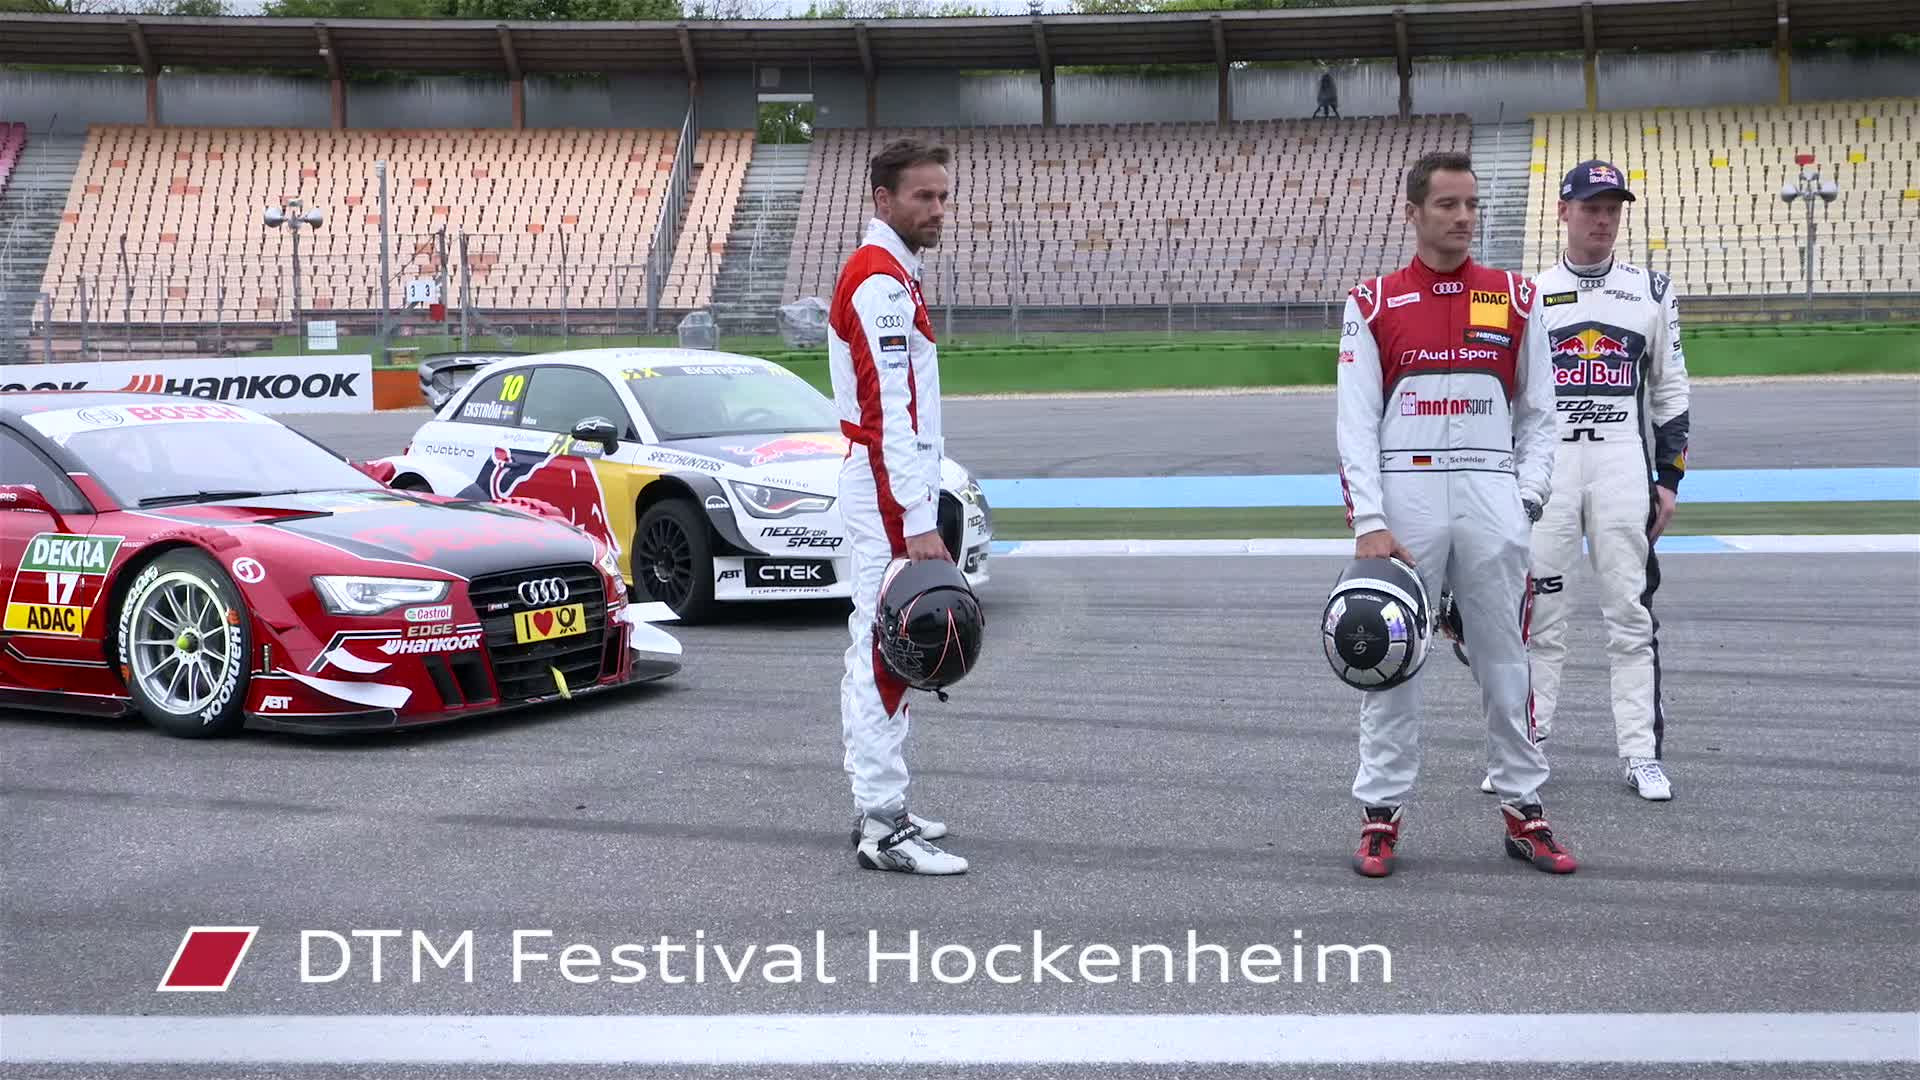 60 Seconds of Audi Sport 16/2015 - DTM Festival Hockenheim